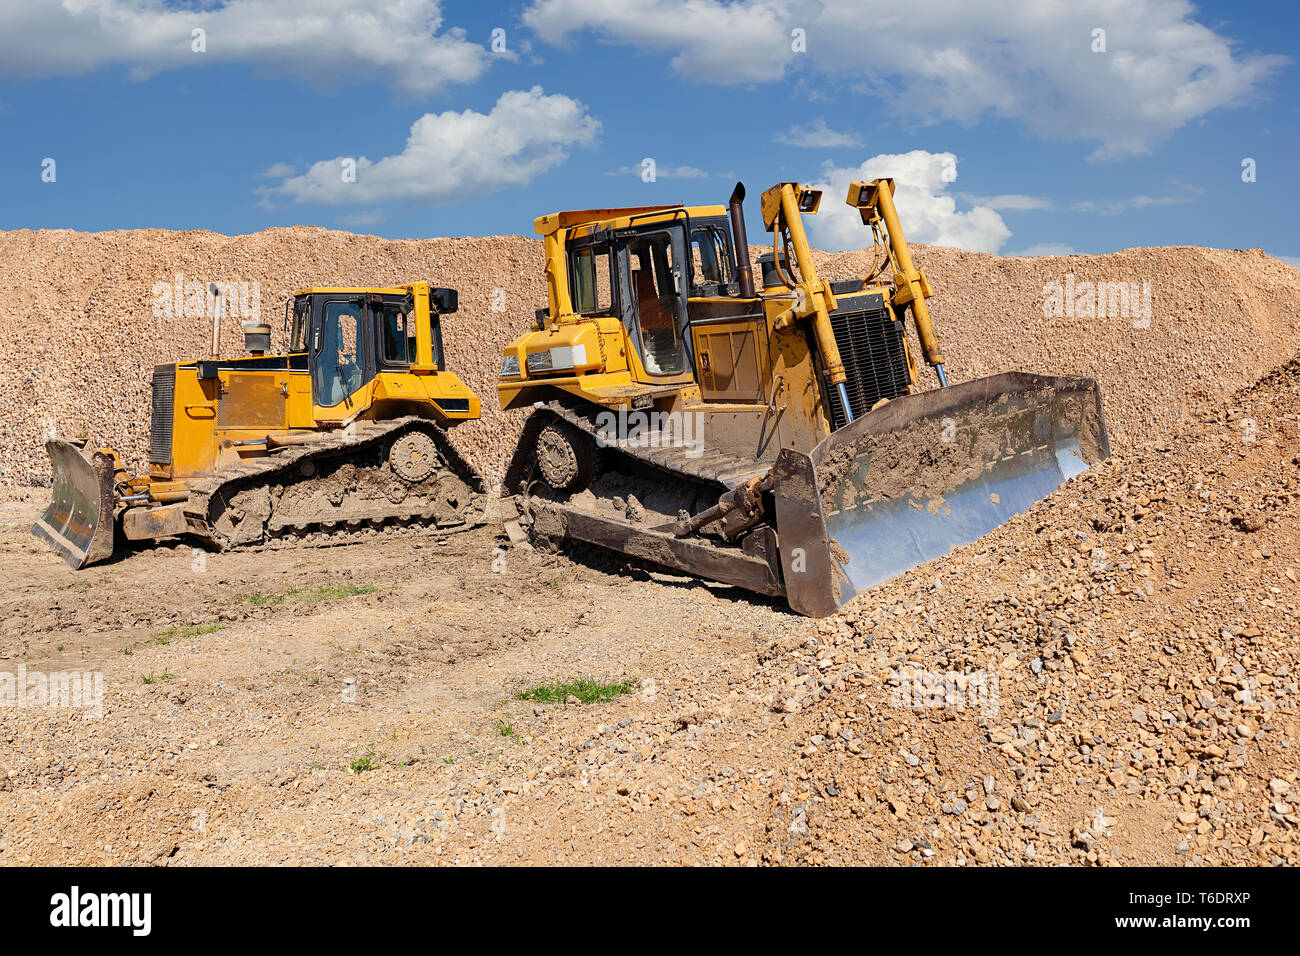 Two yellow dozers on a dirt terrain with blue sky with clouds in the background - Stock Image